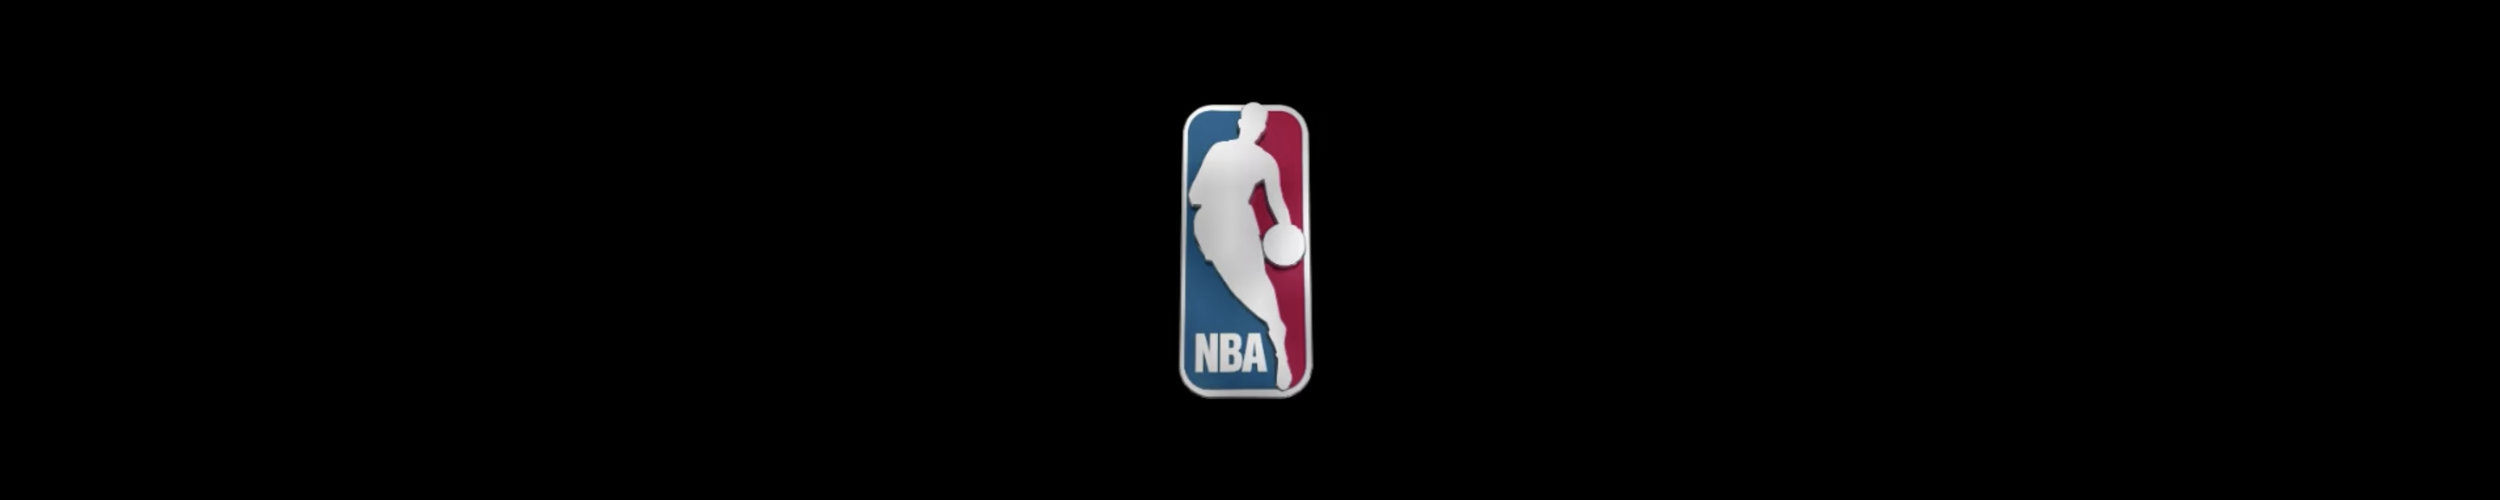 NBA Finals 2016 - Emmy award winning - Directed by Ray Tintori and Gabe Spitzer